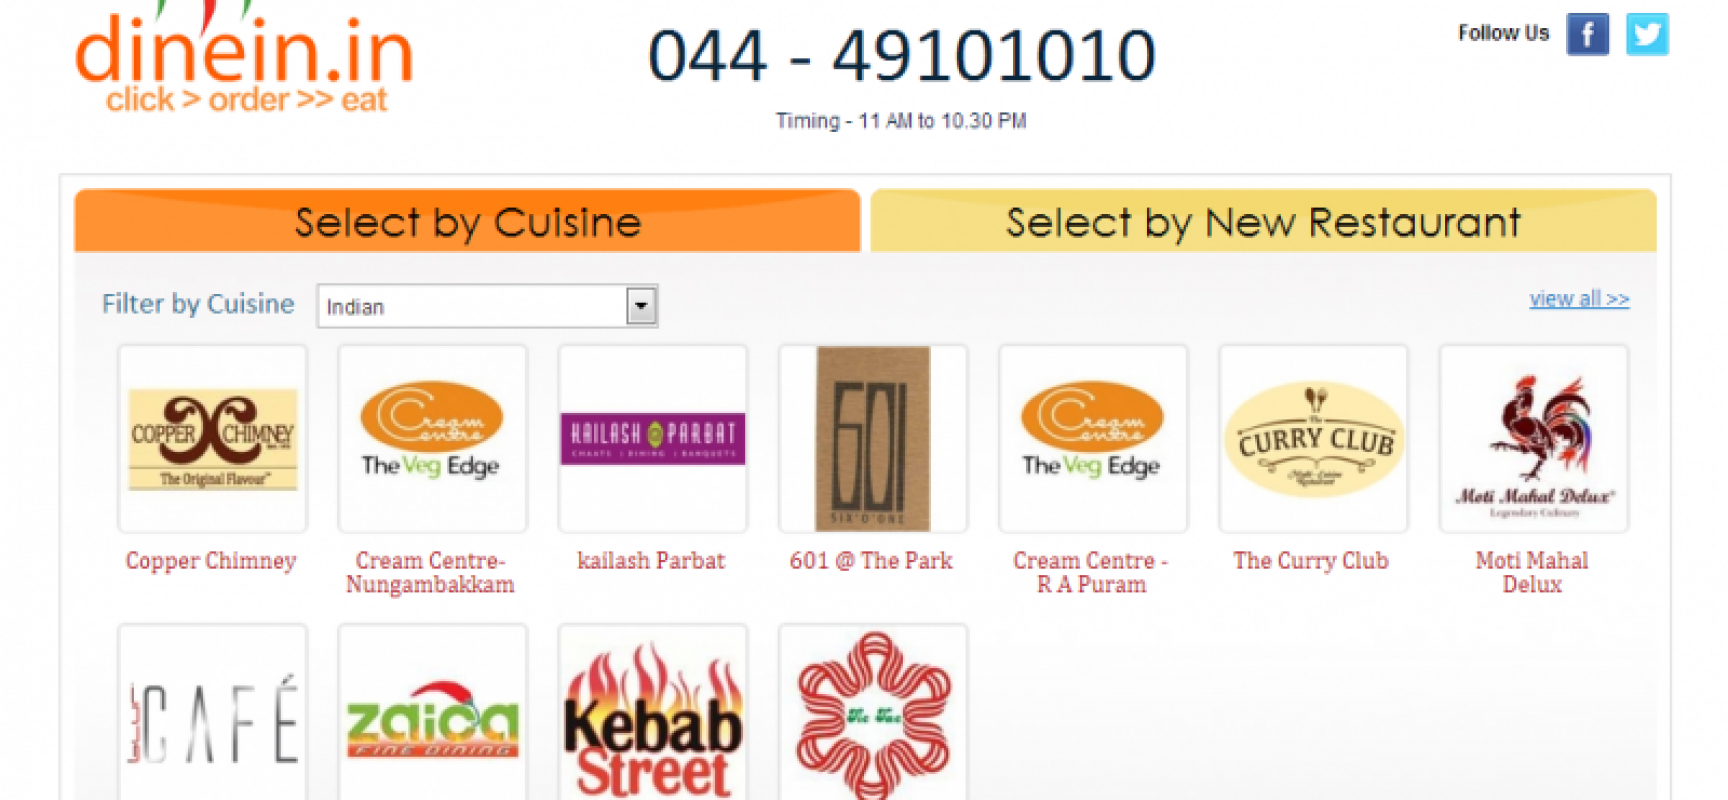 Chennai Online Food Ordering Services